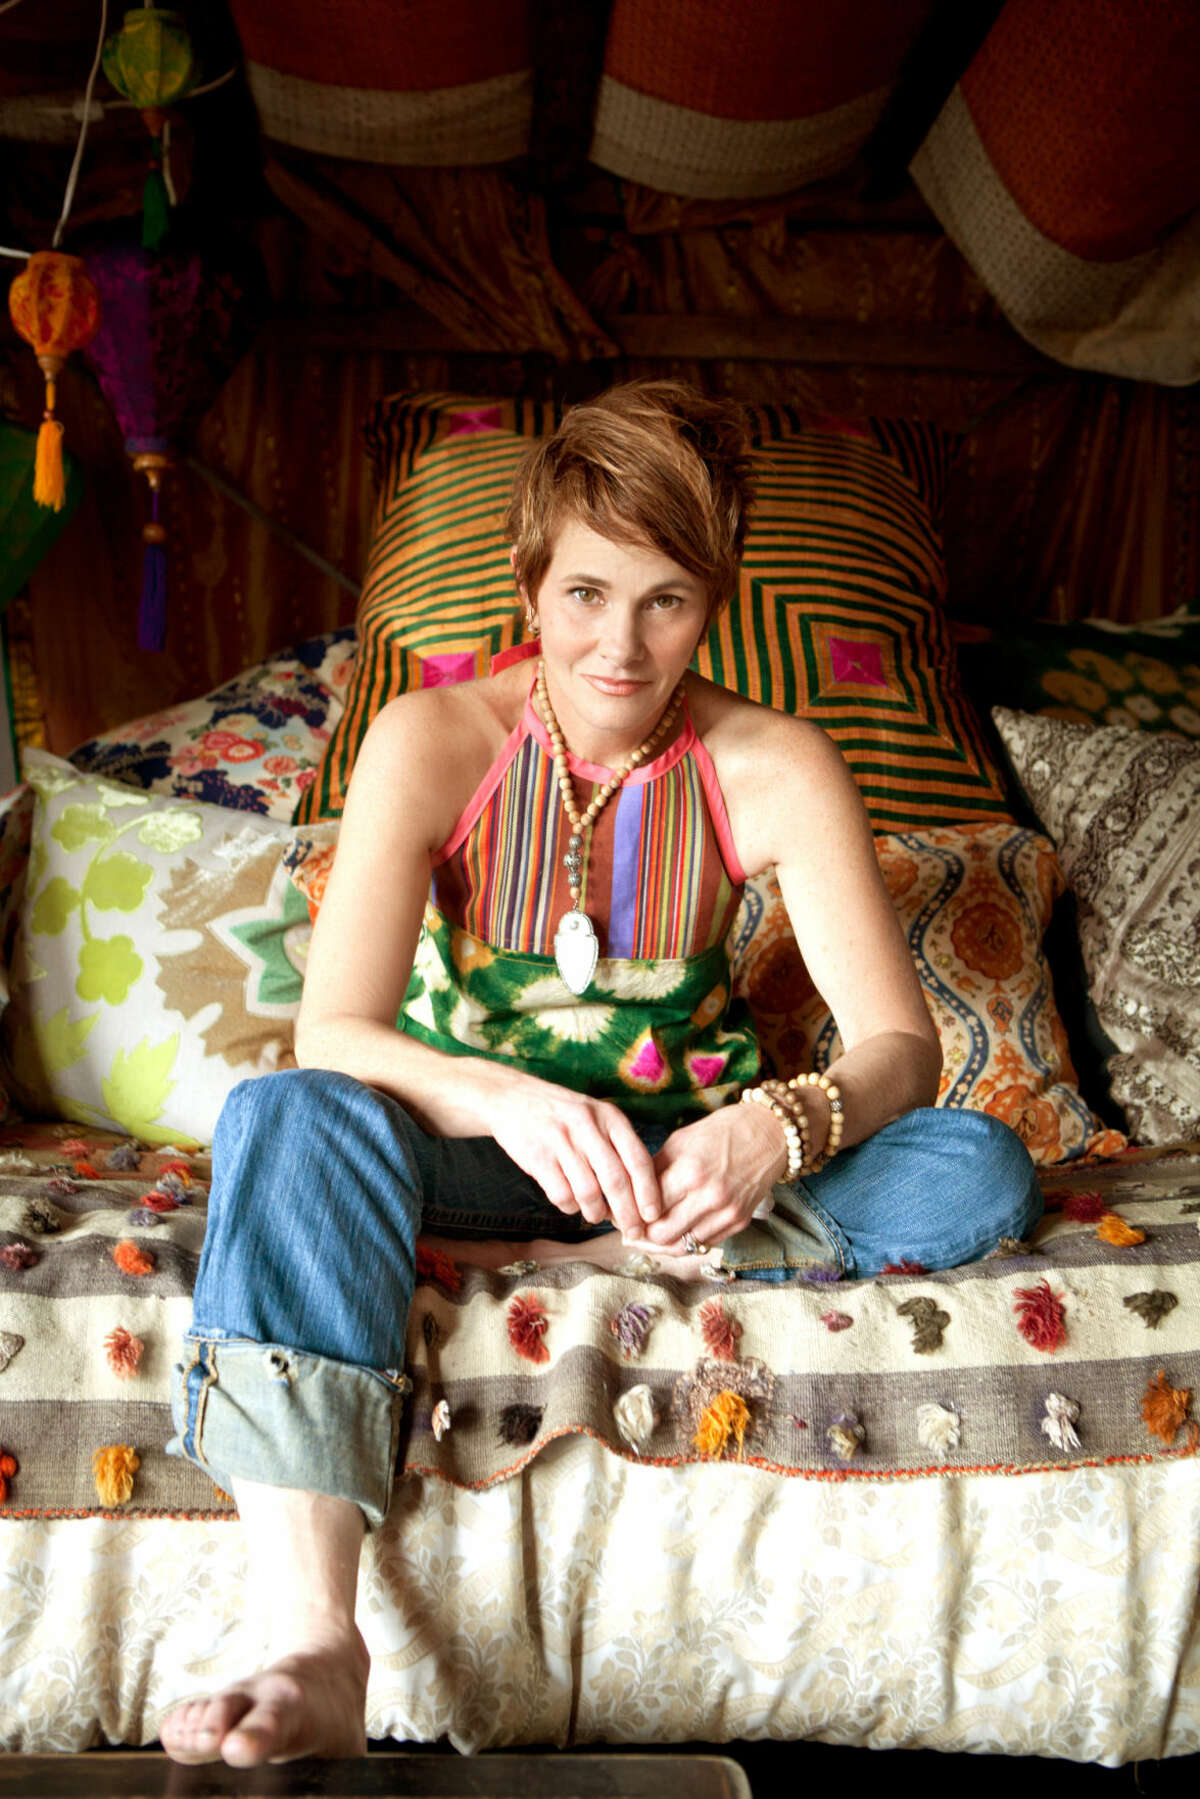 Shawn Colvin and Marc Cohn team at FTC's Norwalk Concert Hall at 8 p.m., Friday, June 26. Tickets range from $35 to $75. For more information, visit fairfieldtheatre.org.